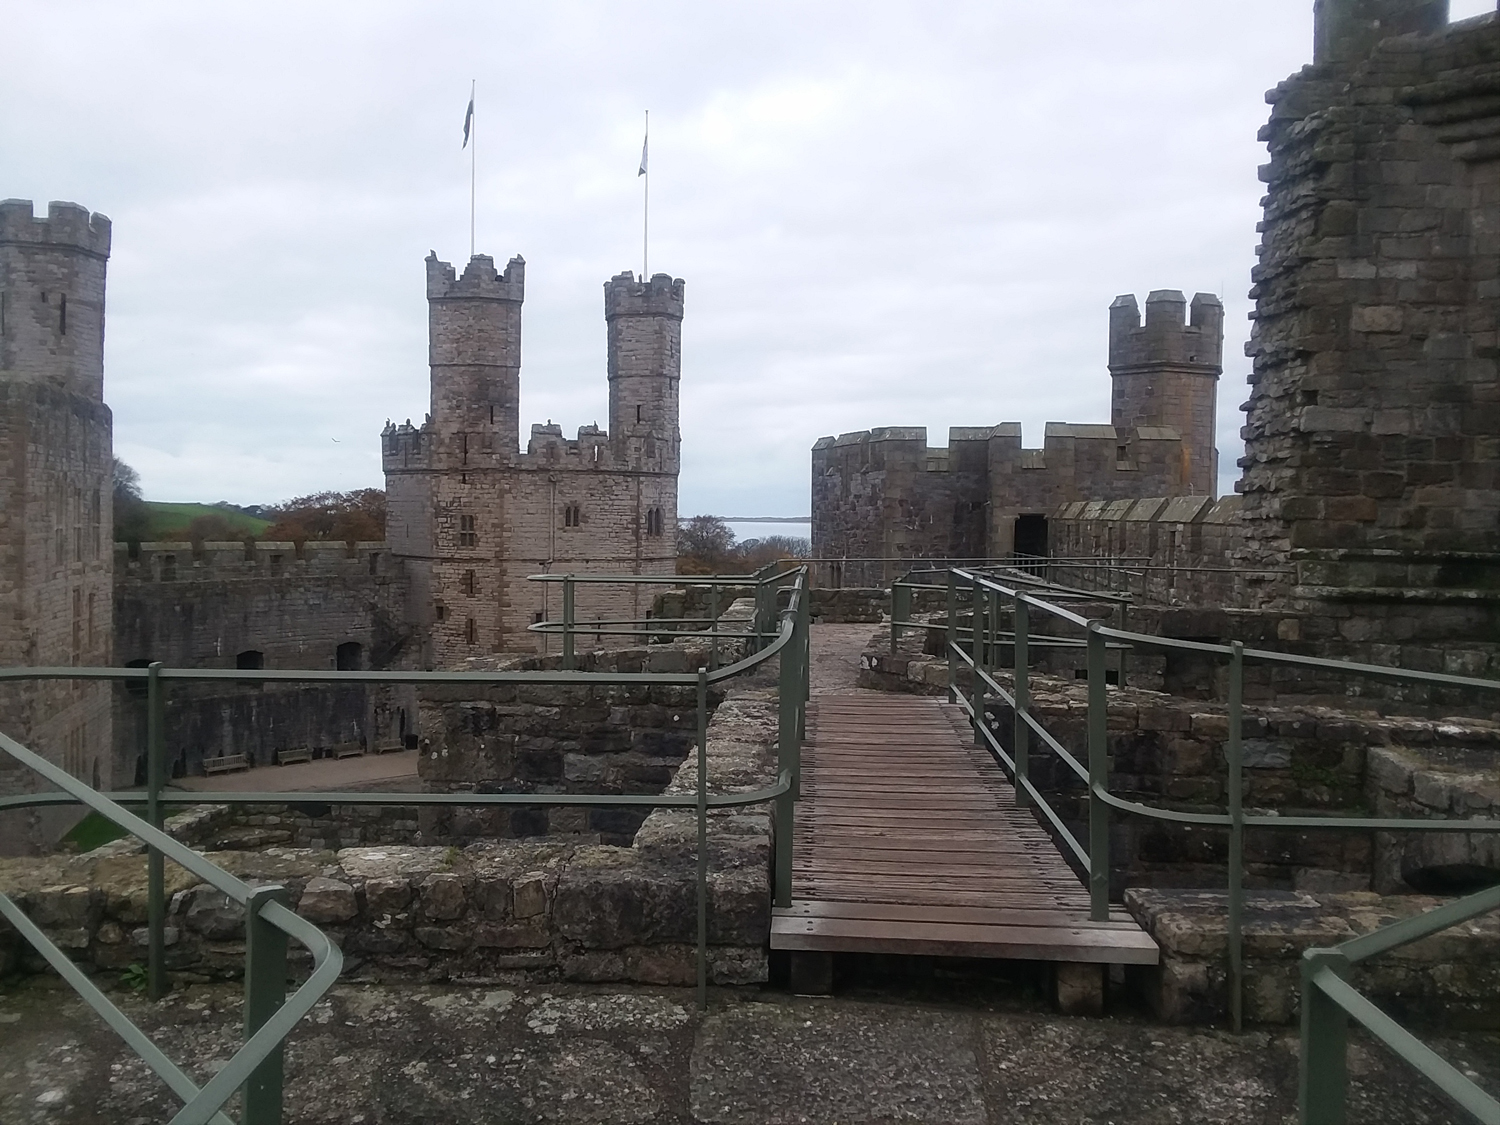 Visitors can climb the towers of Caernarfon castle that sit atop the medieval fortress located in north-west Wales.